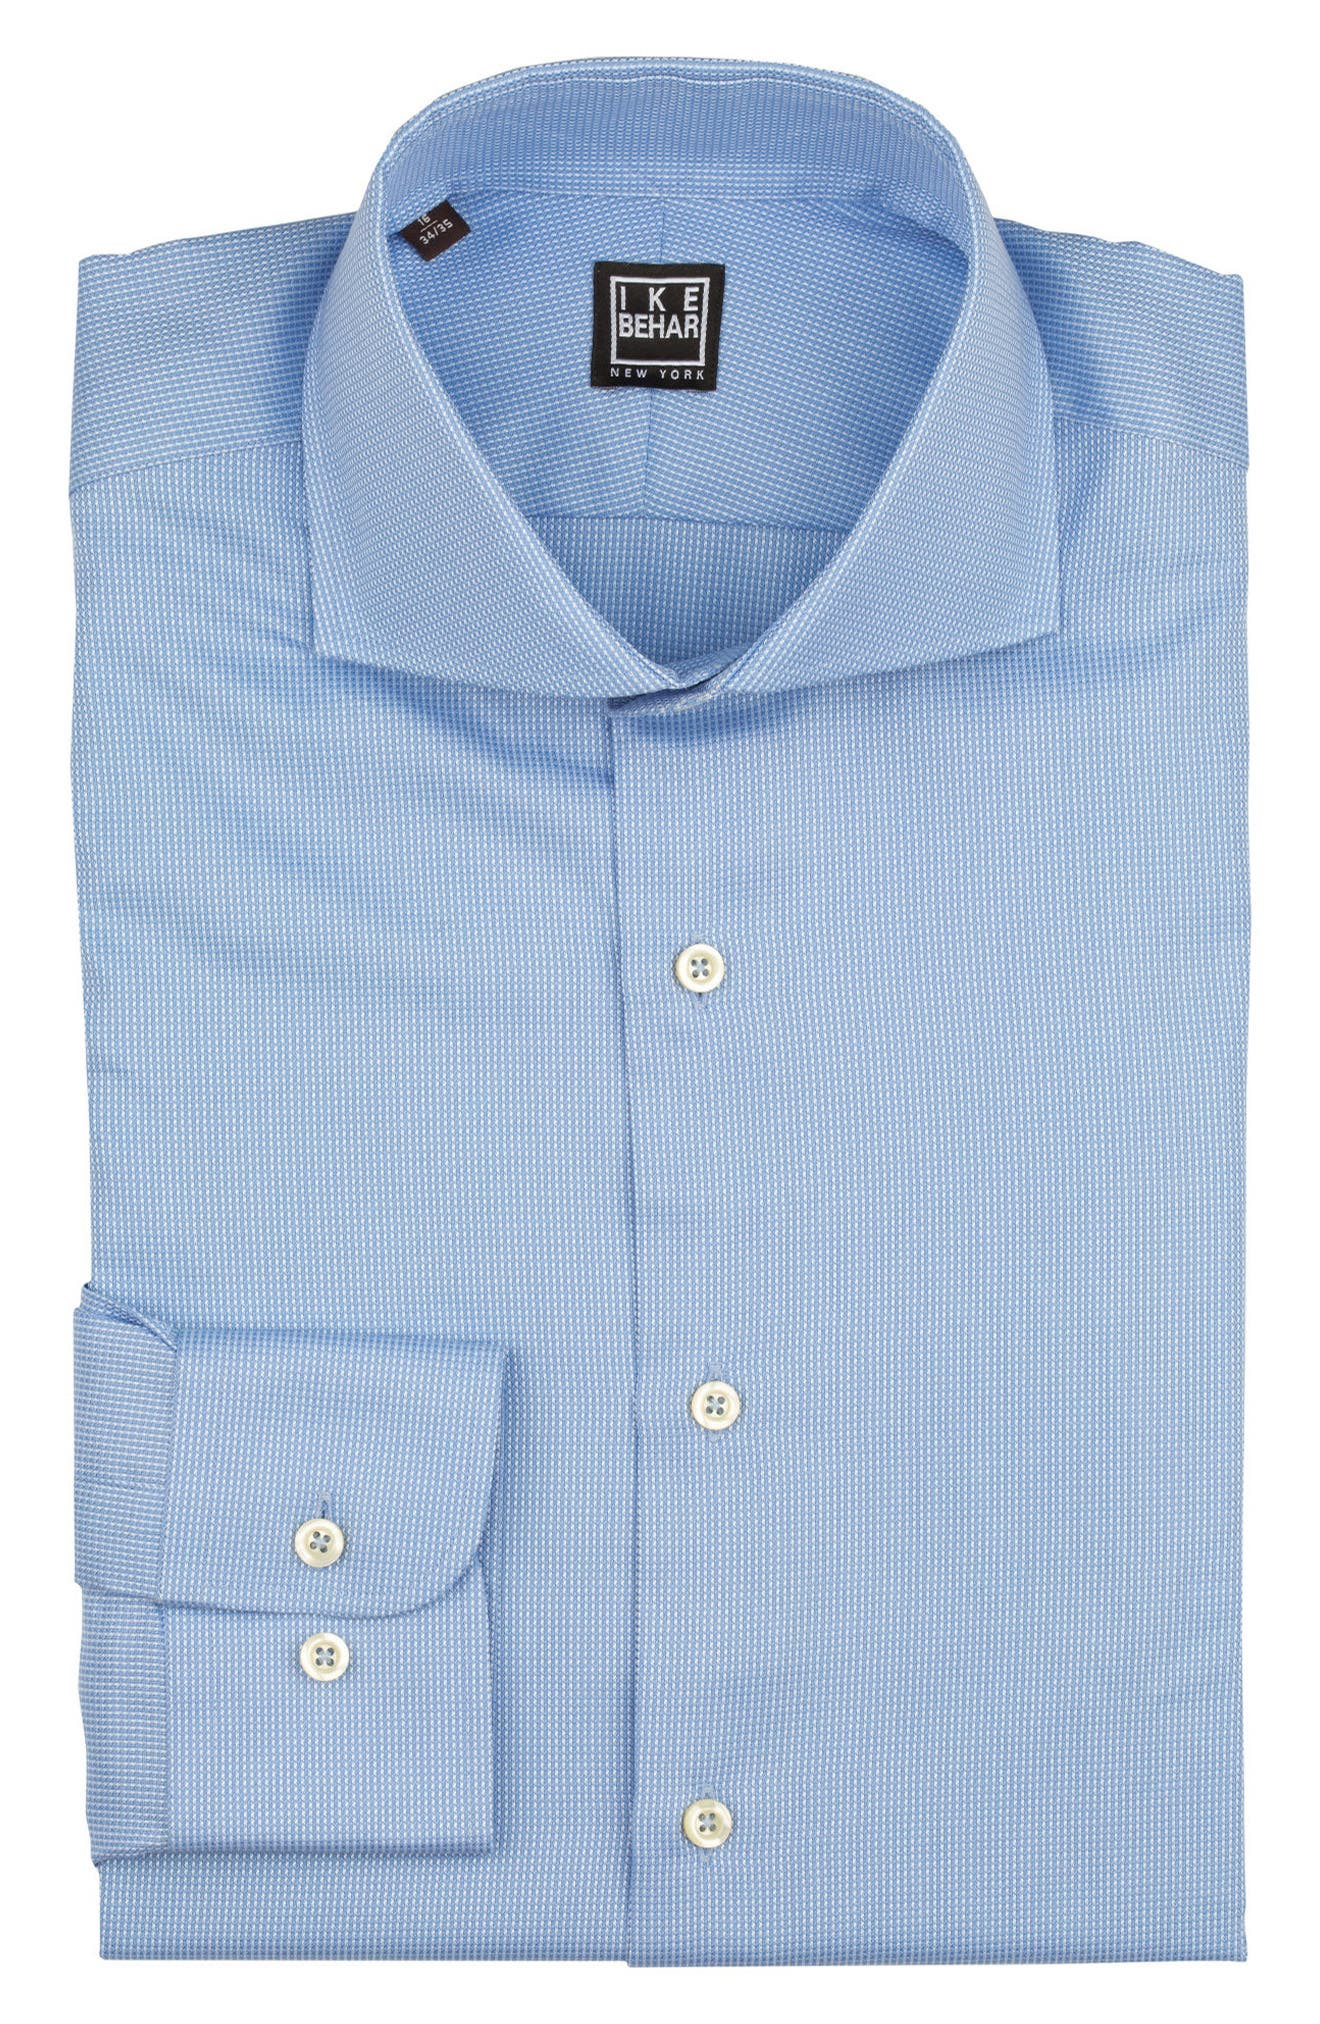 Regular Fit Solid Dress Shirt,                             Alternate thumbnail 5, color,                             BLUE